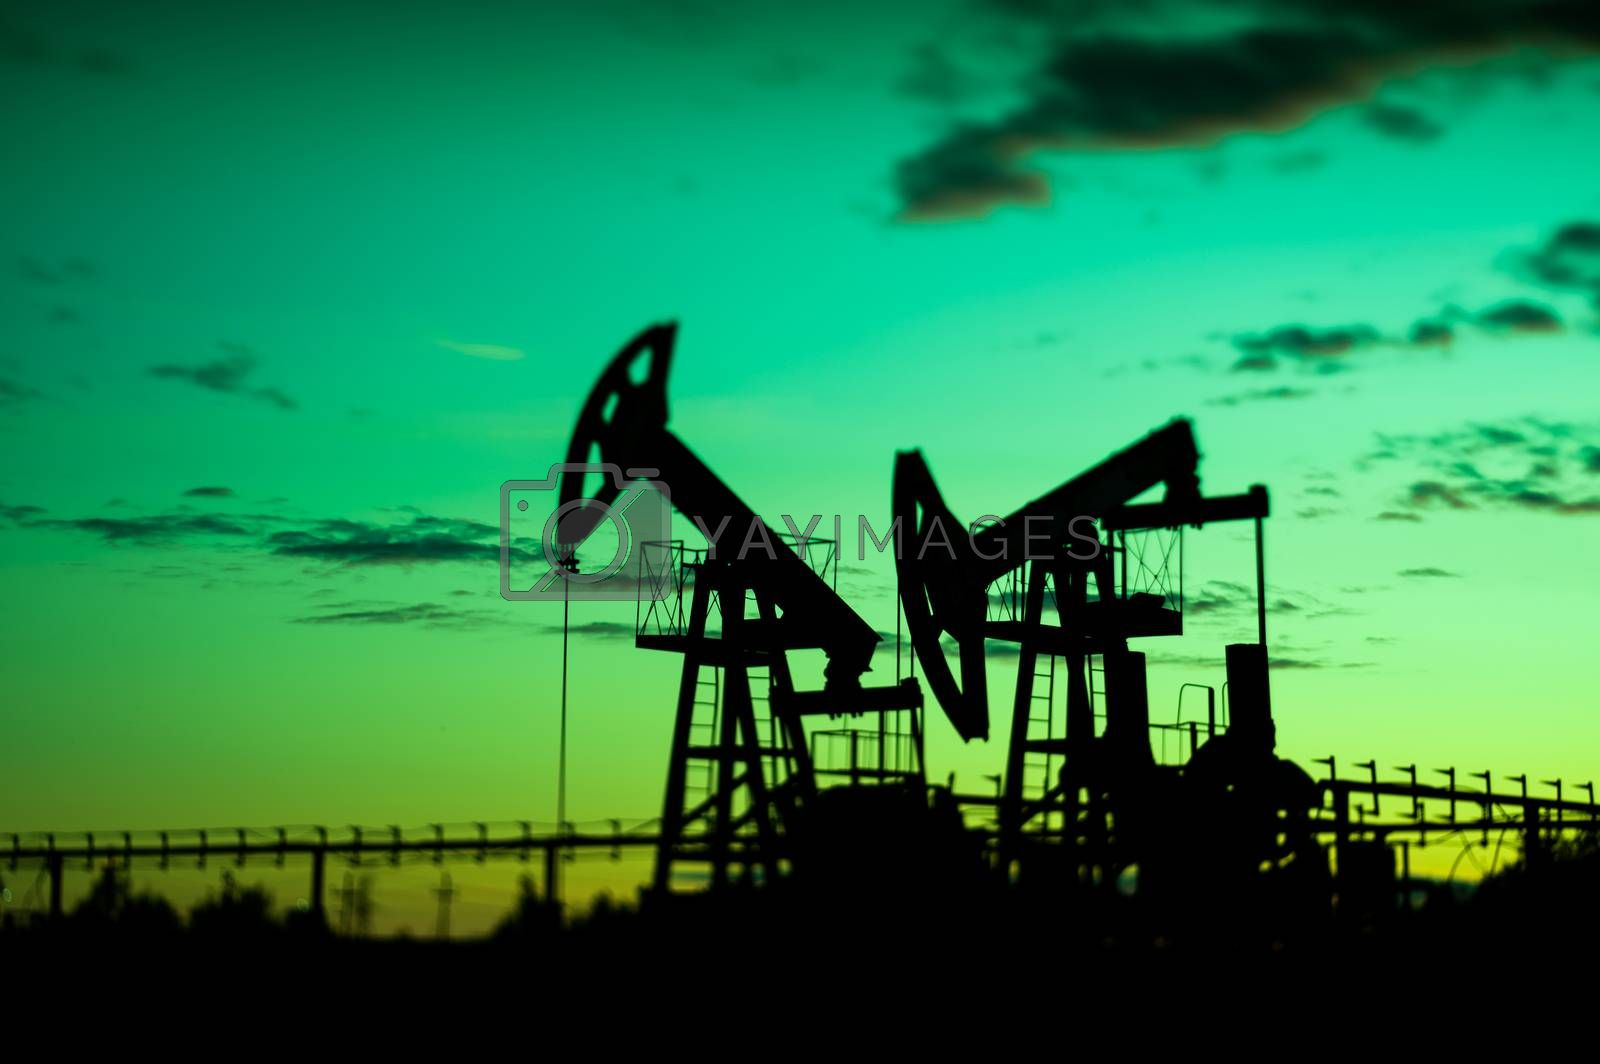 Oil pump jacks at sunset sky background. Selective focus, shallow depth of field.